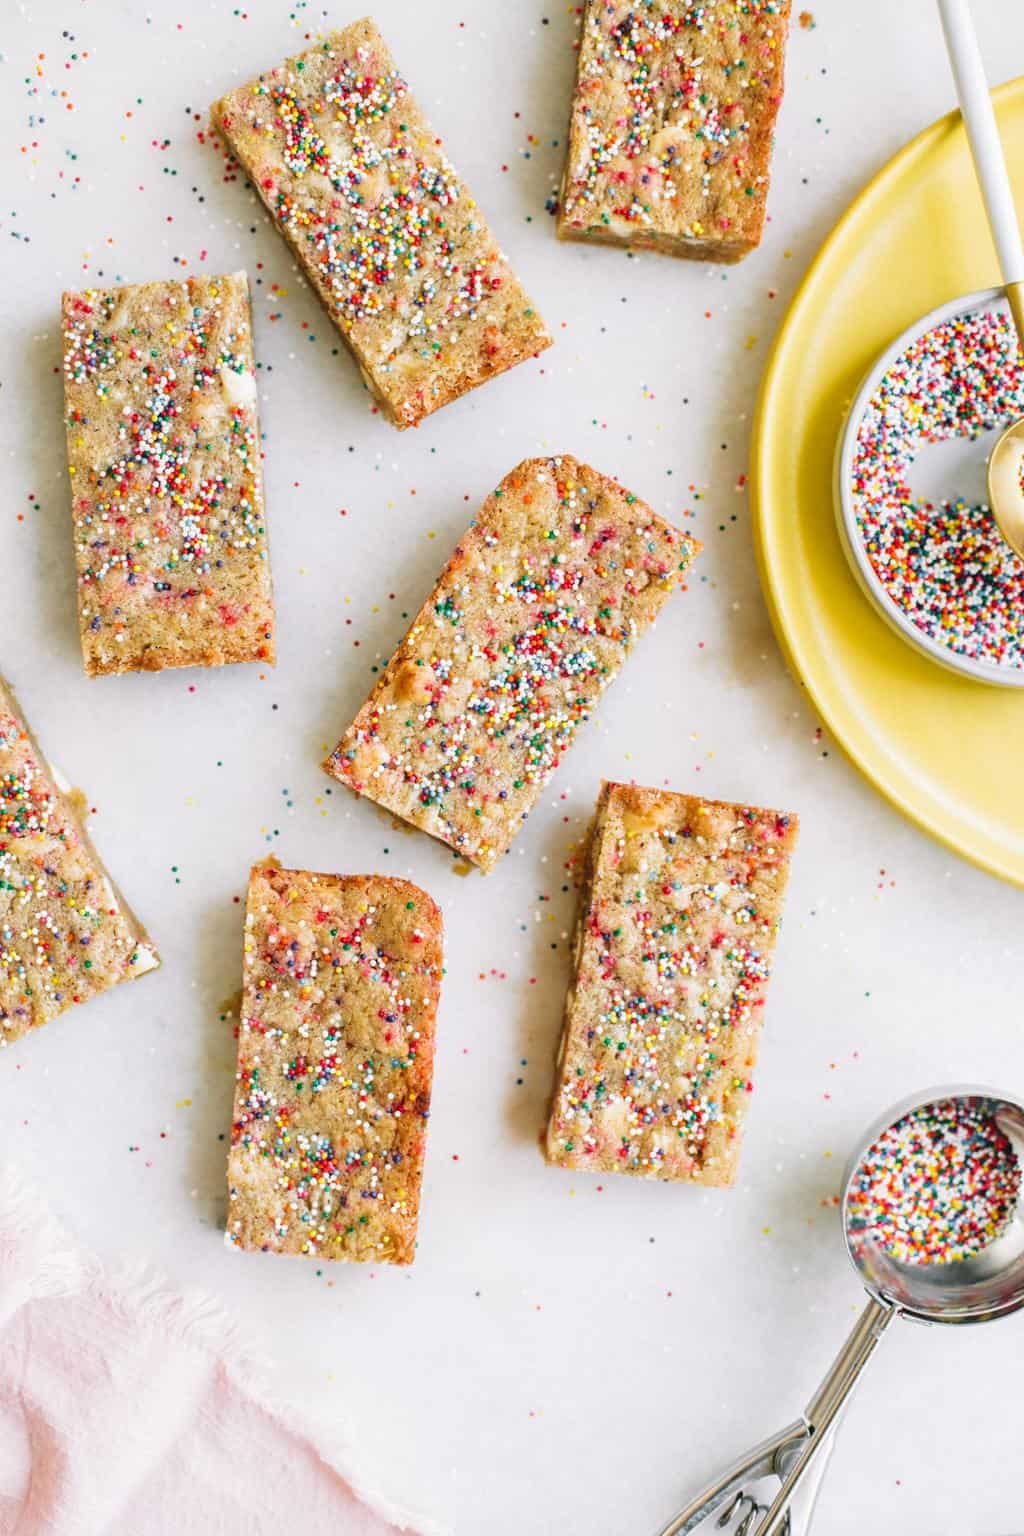 Blondies covered in sprinkles with a bowl of sprinkles.